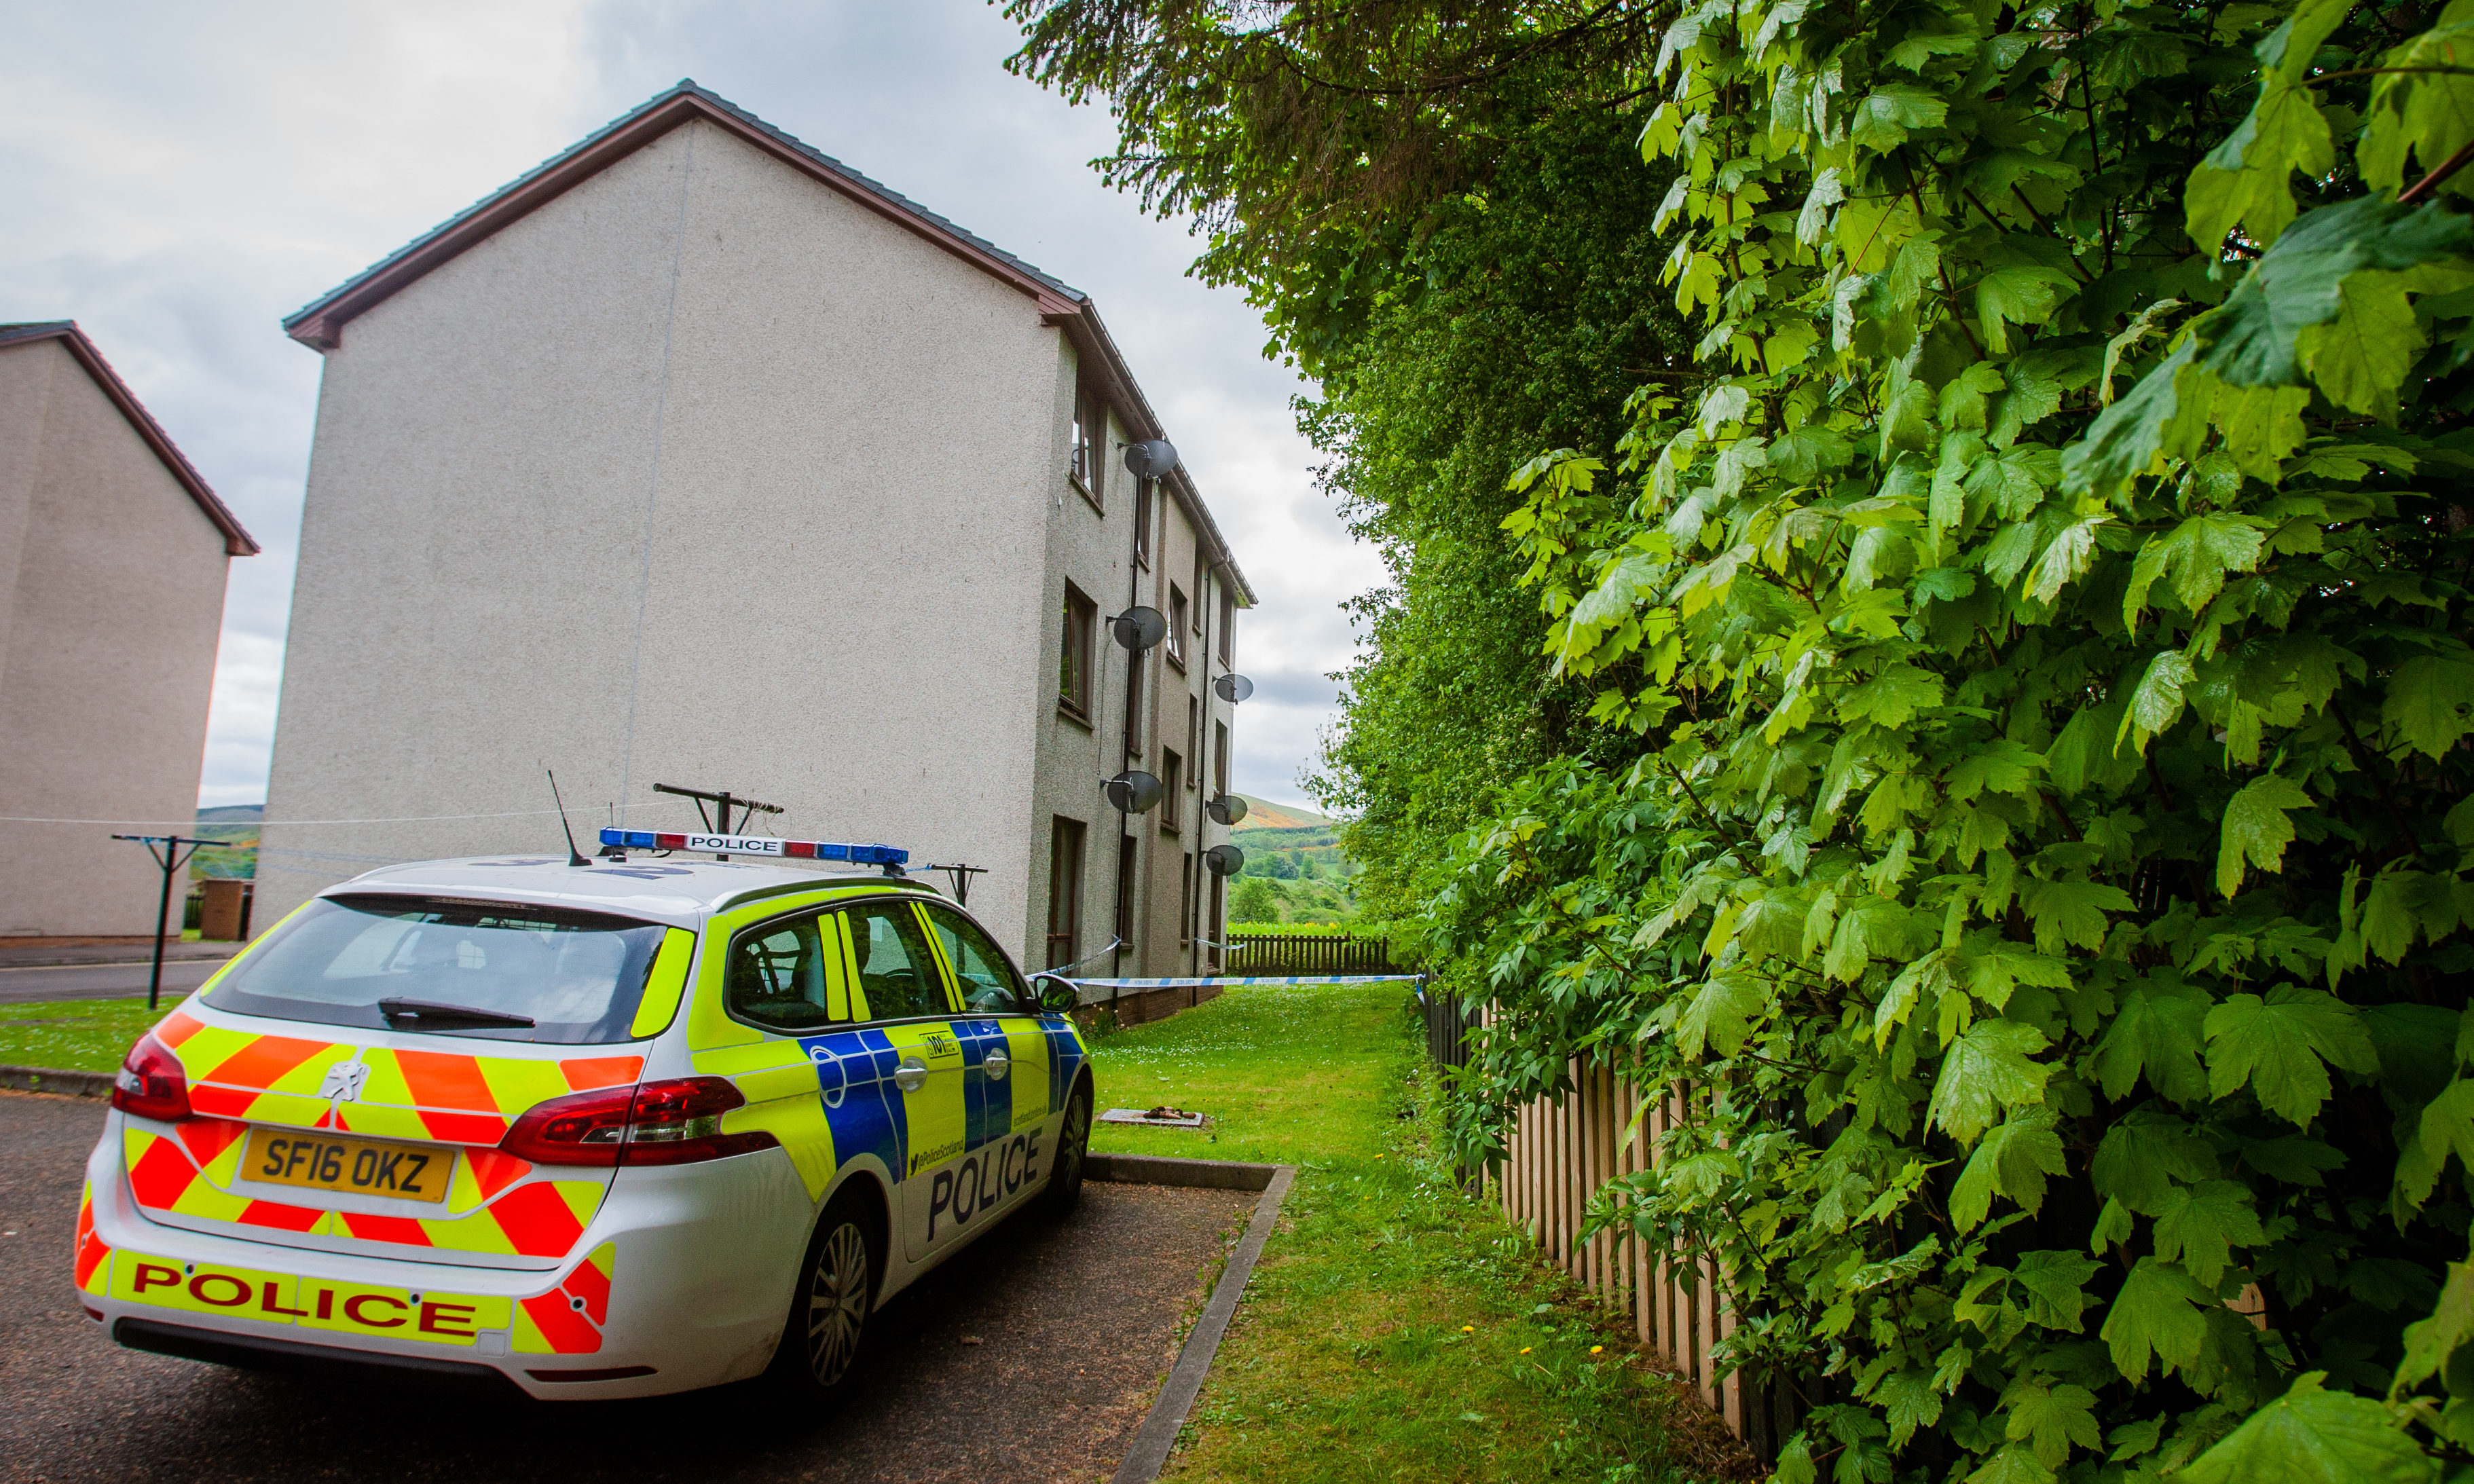 Police at Ruthven Park, Auchterarder in May 2018.